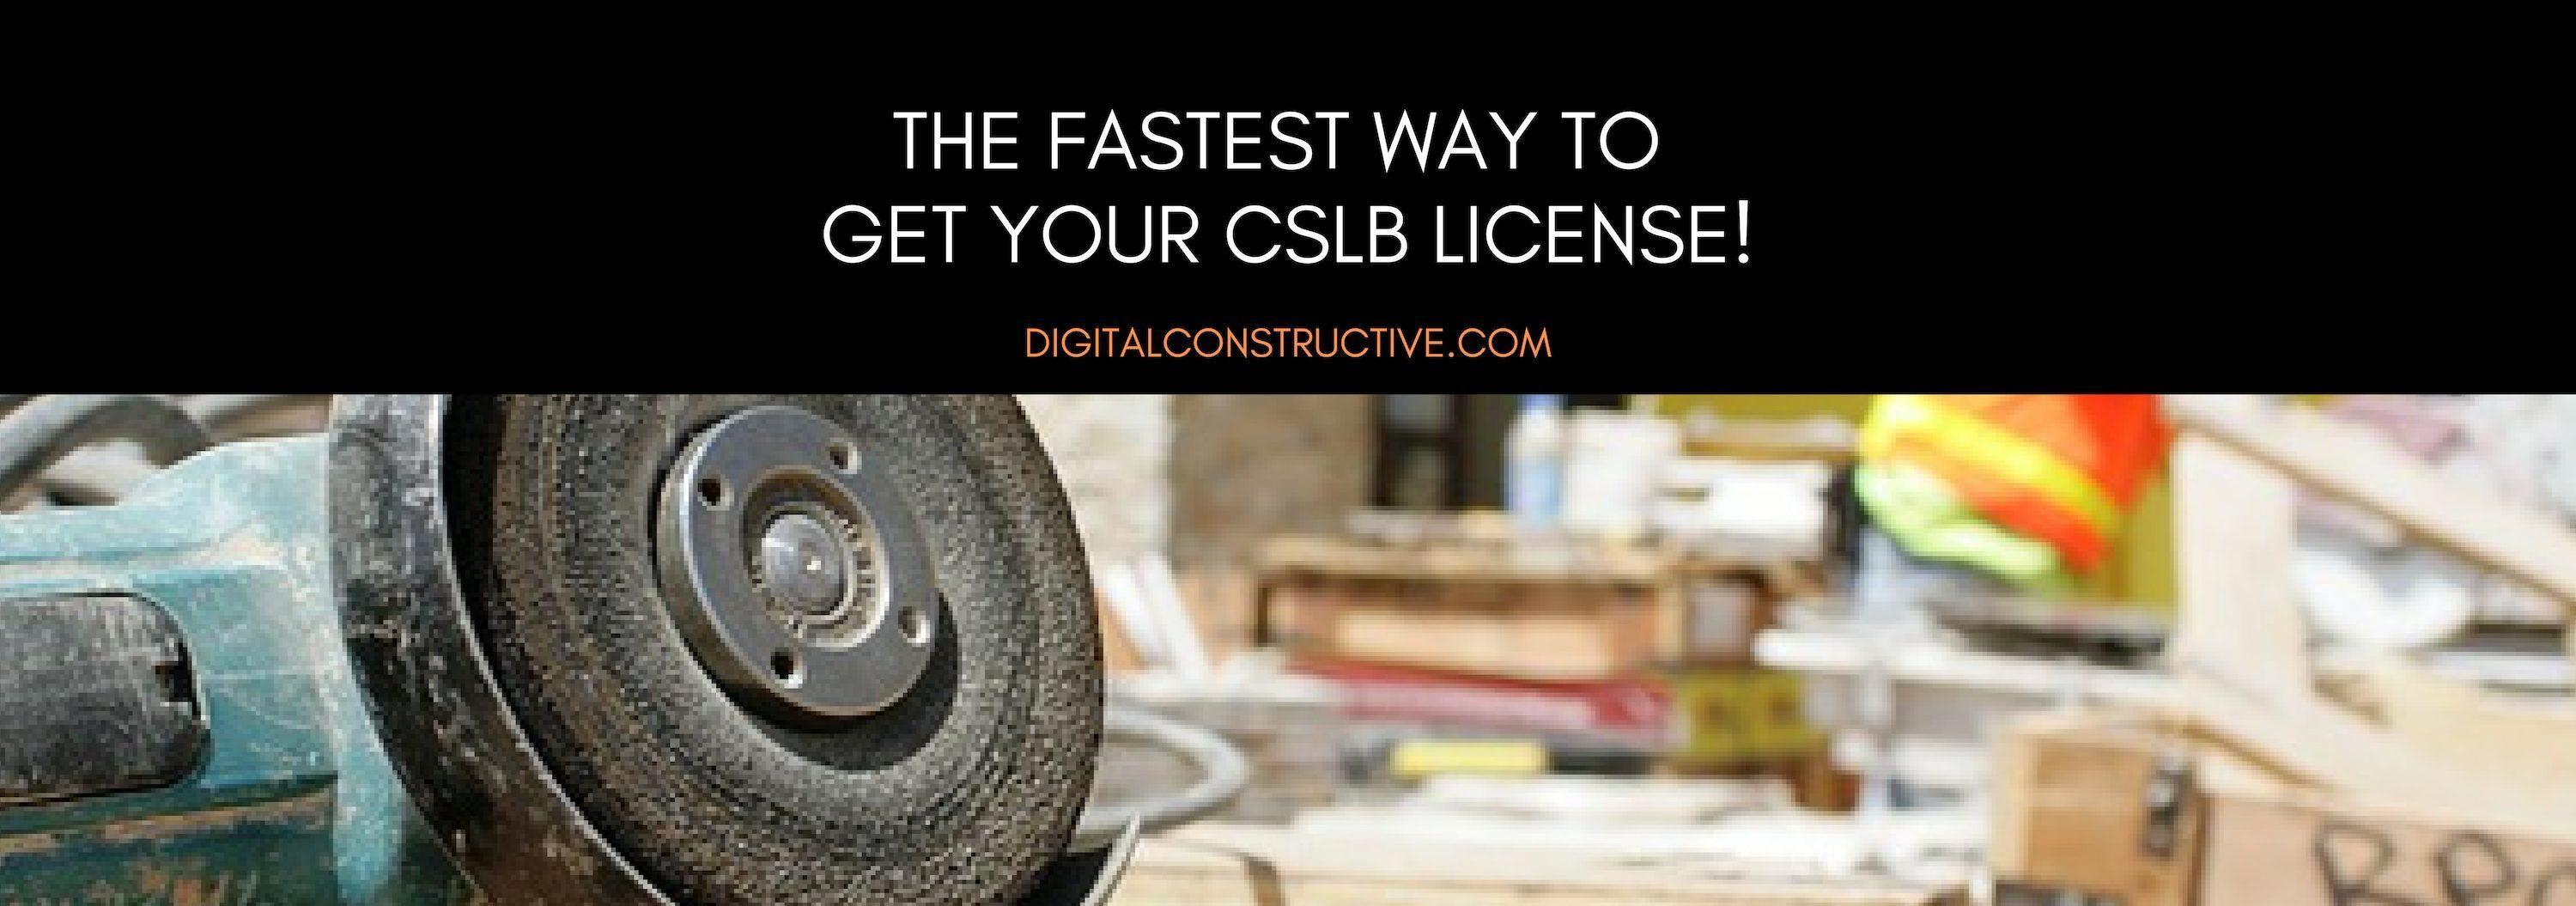 image shows tools and then a contractor in the background, proven strategies to get your CSLB license fast!